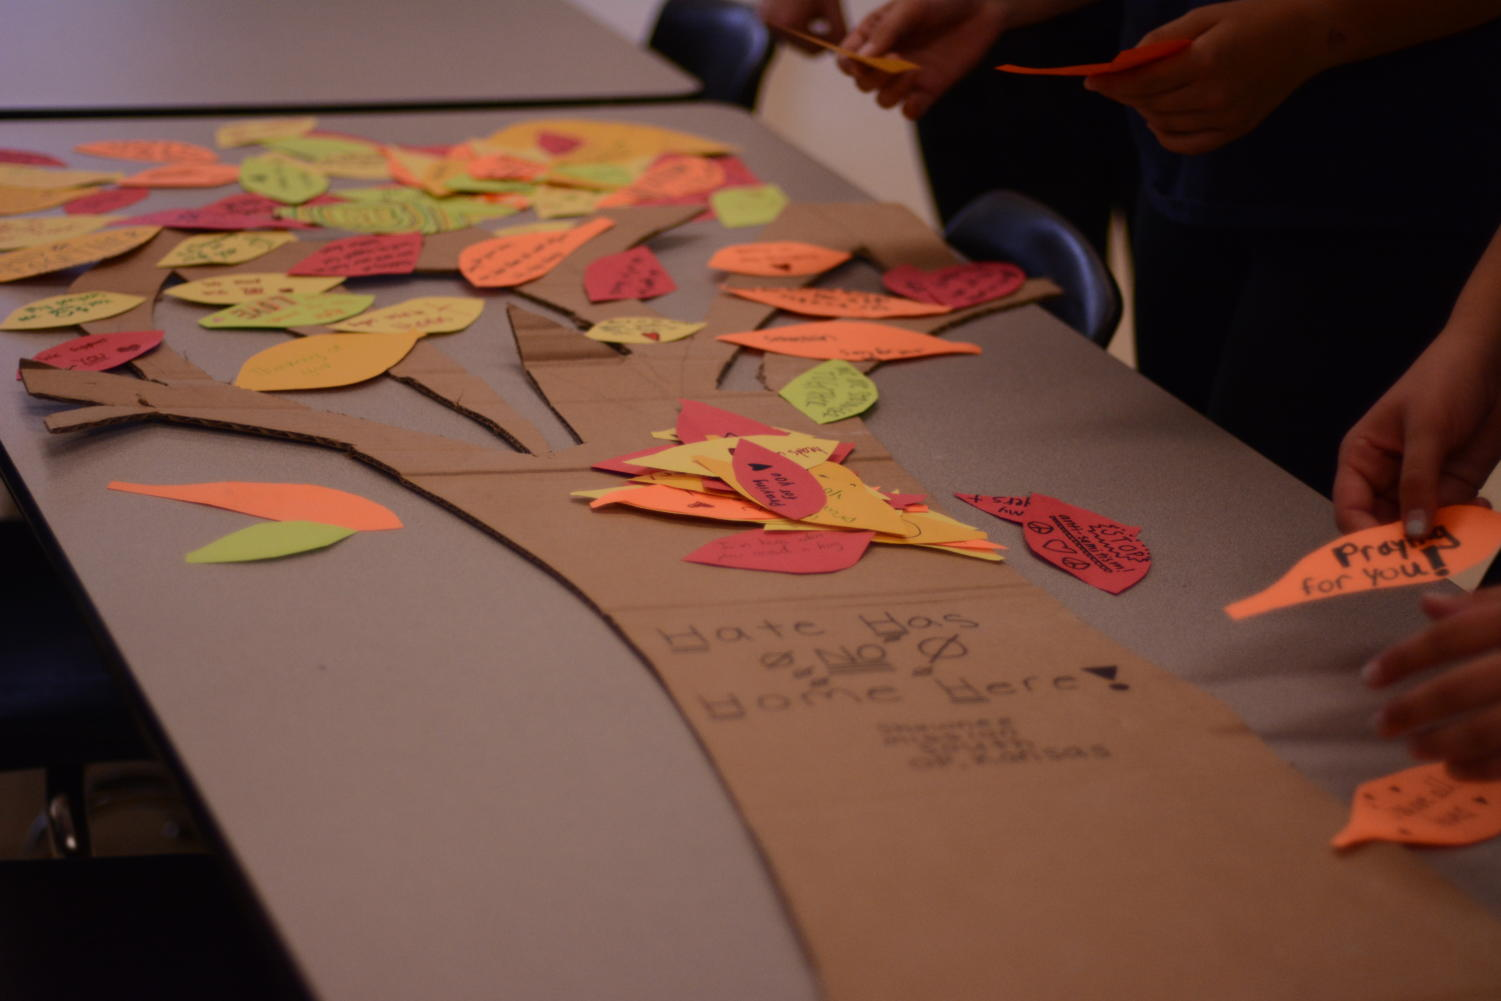 In response to the tragedy at the Tree of Life Synagogue in Pittsburg, South's Jewish Student Union put together their own tree of encouragement to send to those affected.